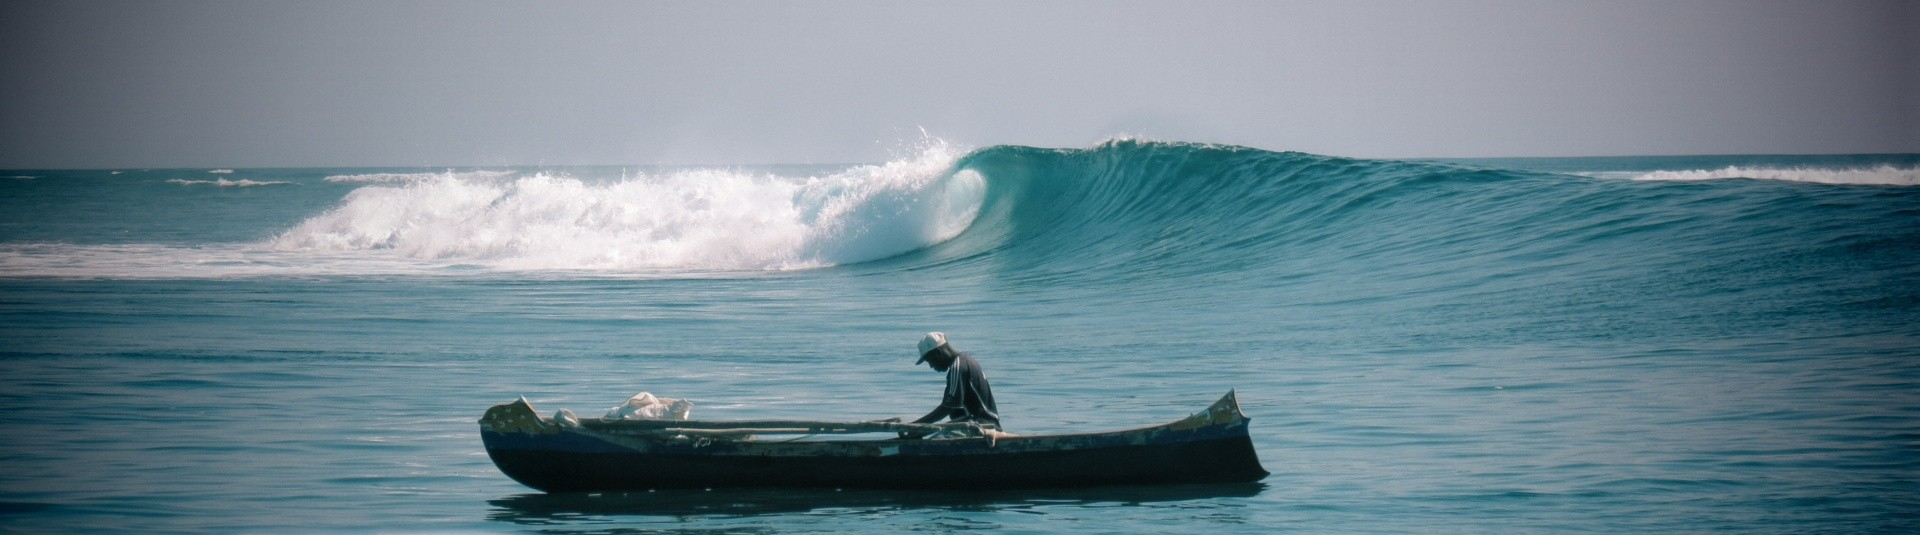 Madagascar Surf's photo of Flame Bowls